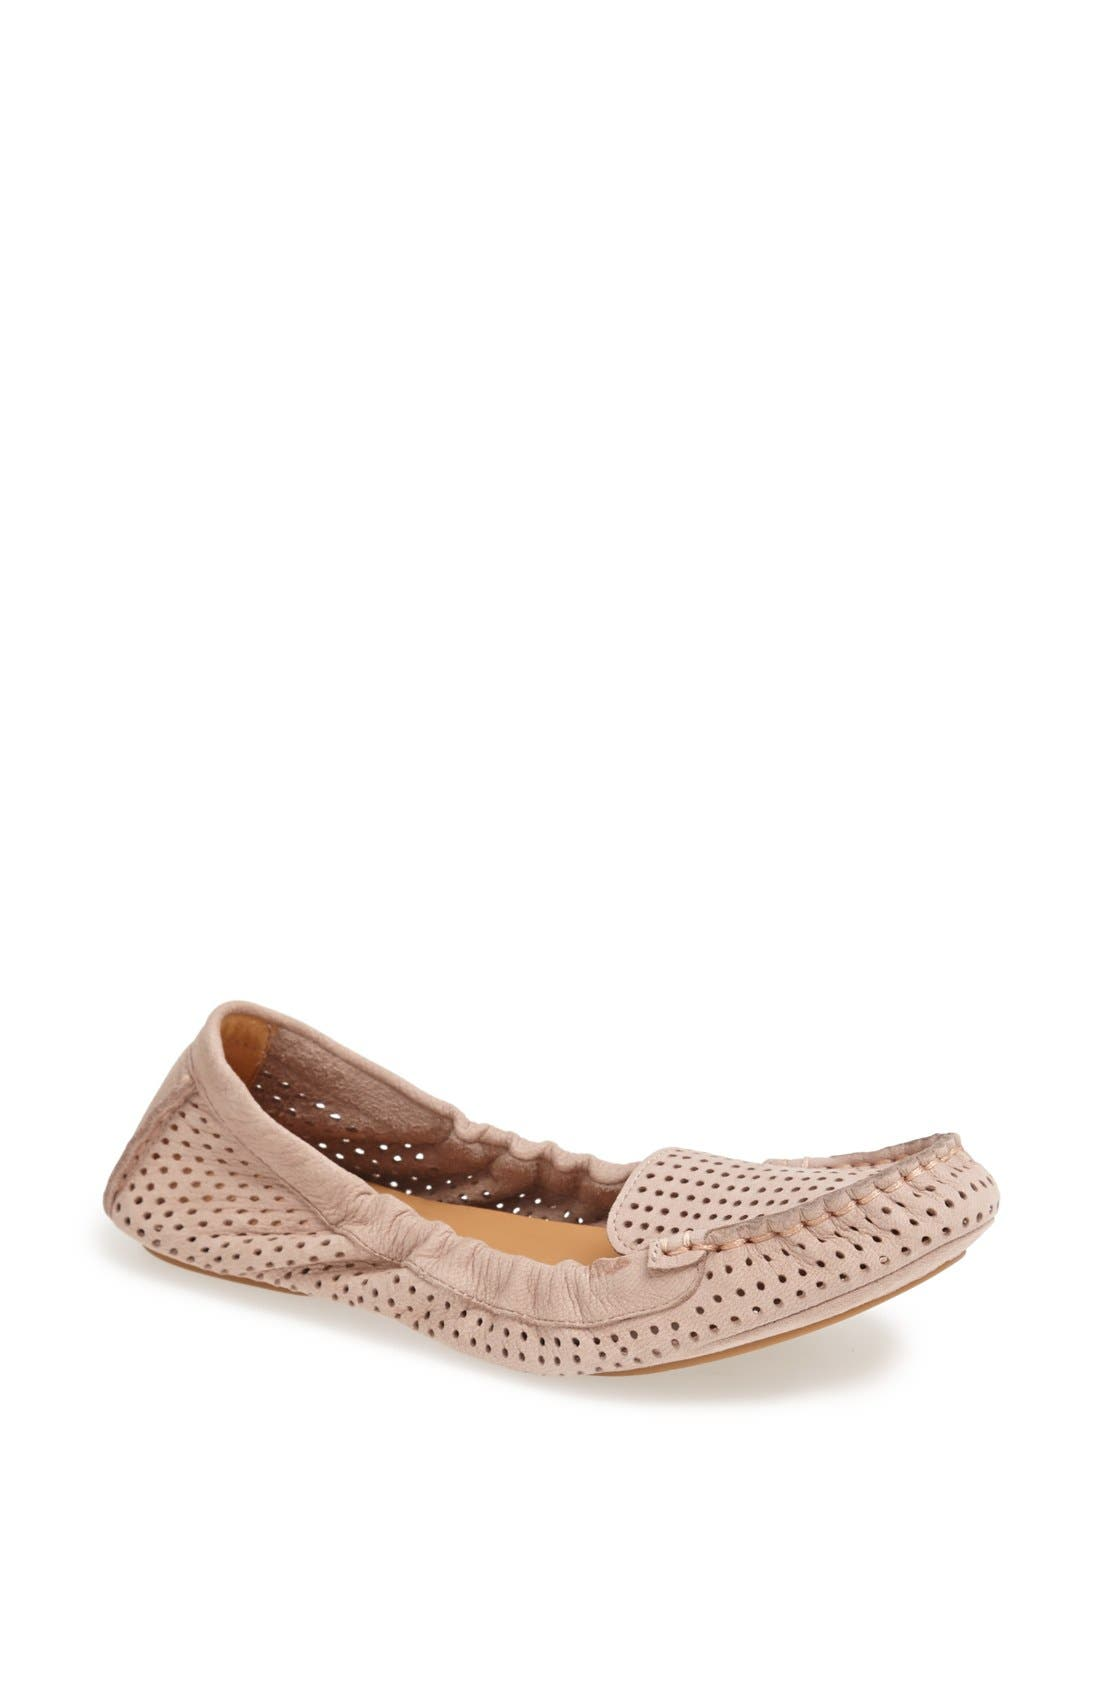 Alternate Image 1 Selected - Nine West 'Teanna' Perforated Nubuck Flat